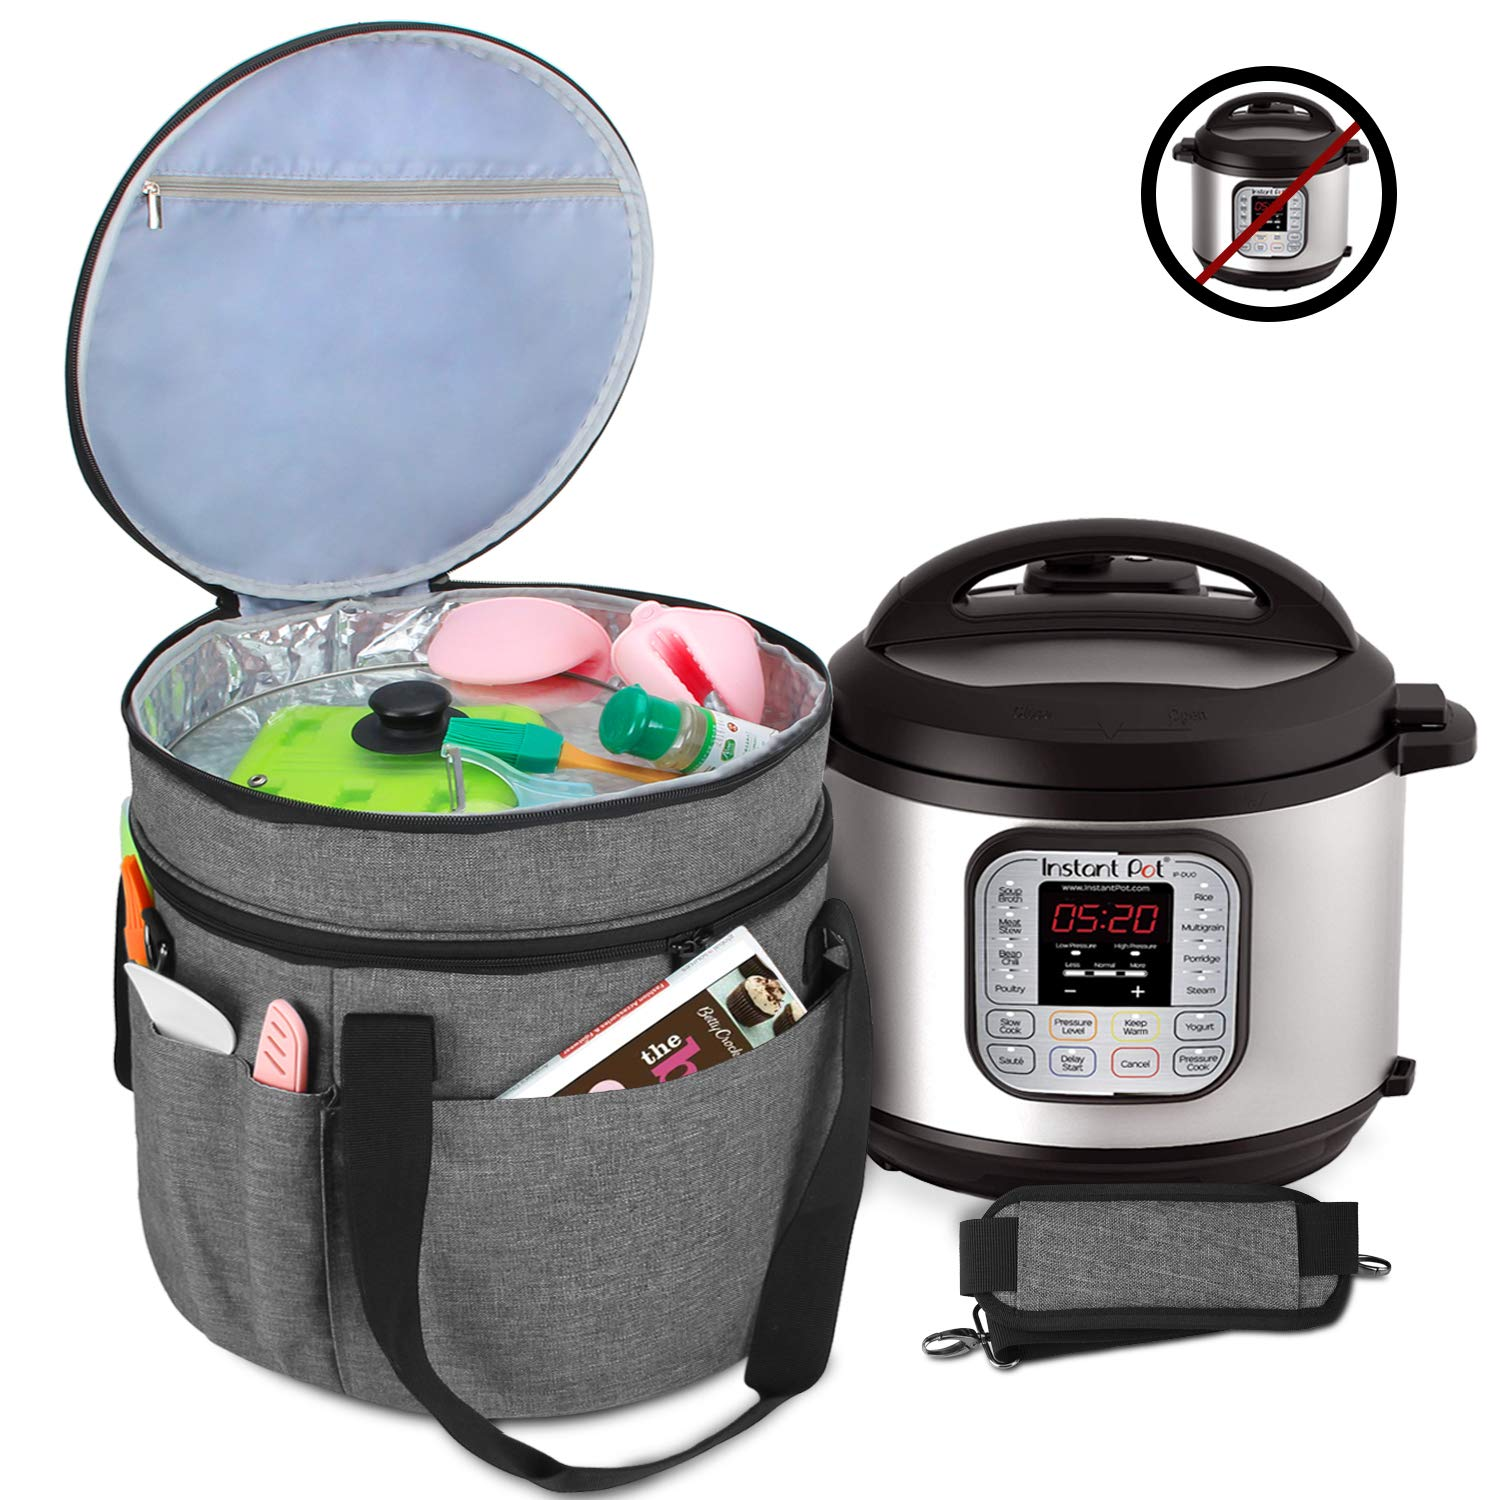 Luxja Carrying Bag Compatible with Instant Pot (8 Quart), Travel Tote Bag for 8 Quart Pressure Cooker and Extra Accessories, Gray